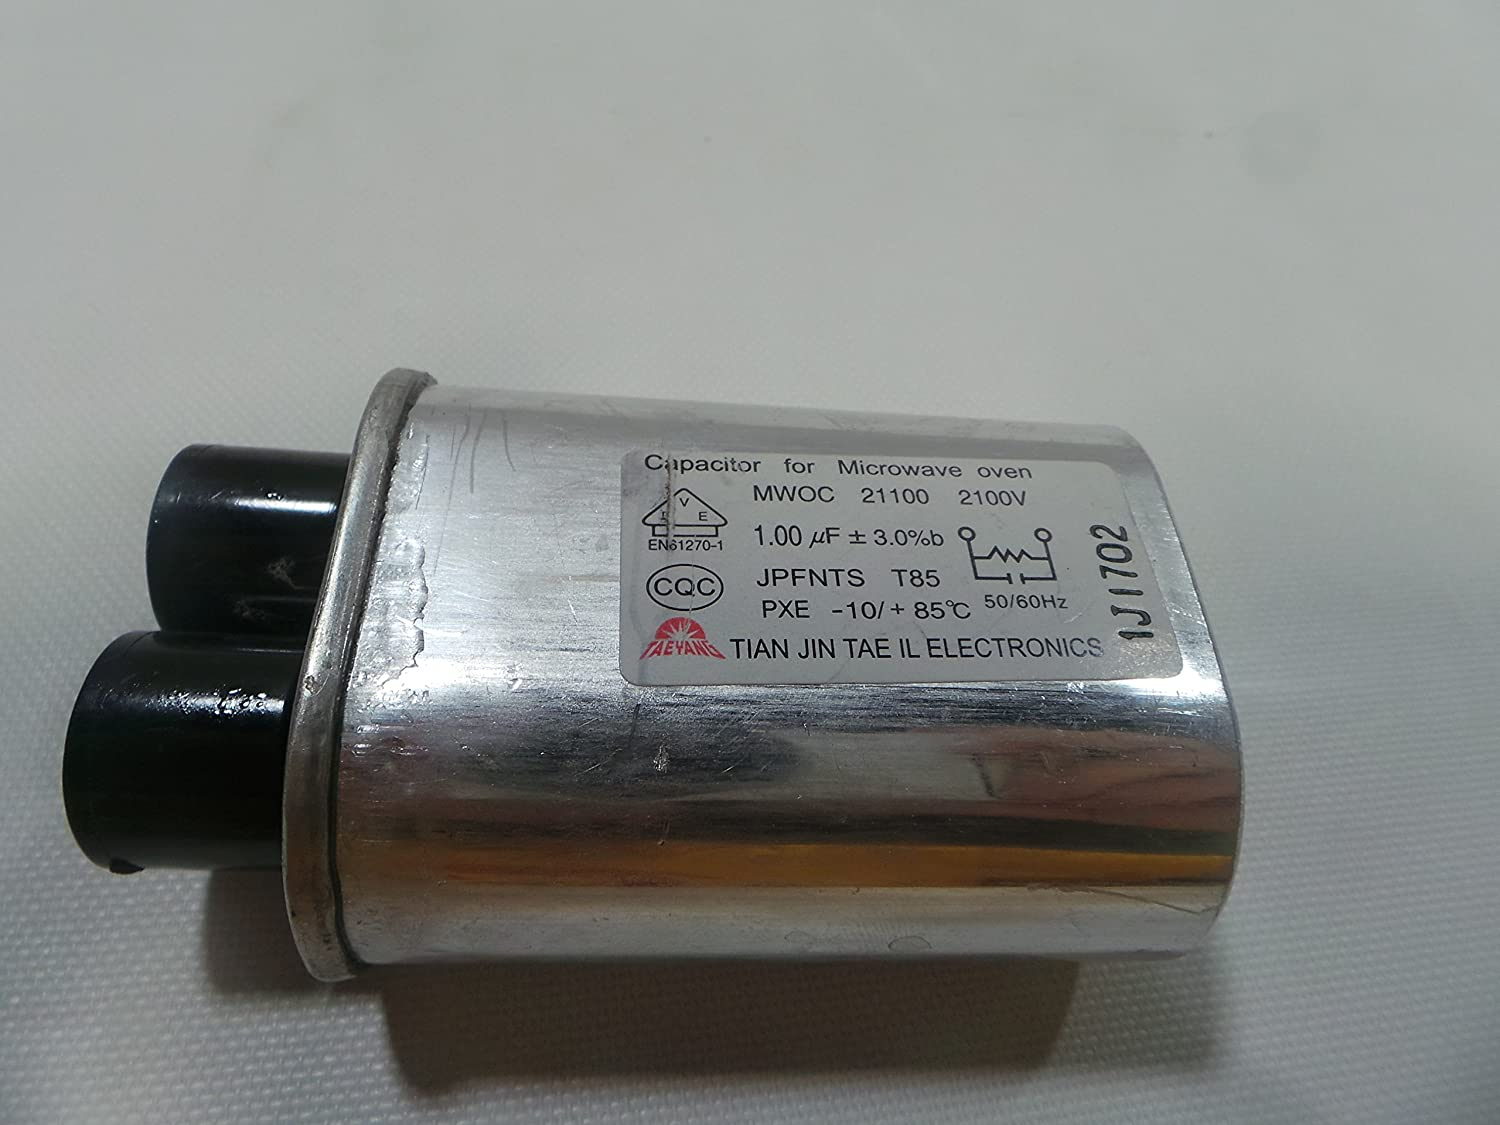 LG MWOC211002100V Microwave High Voltage Capacitor